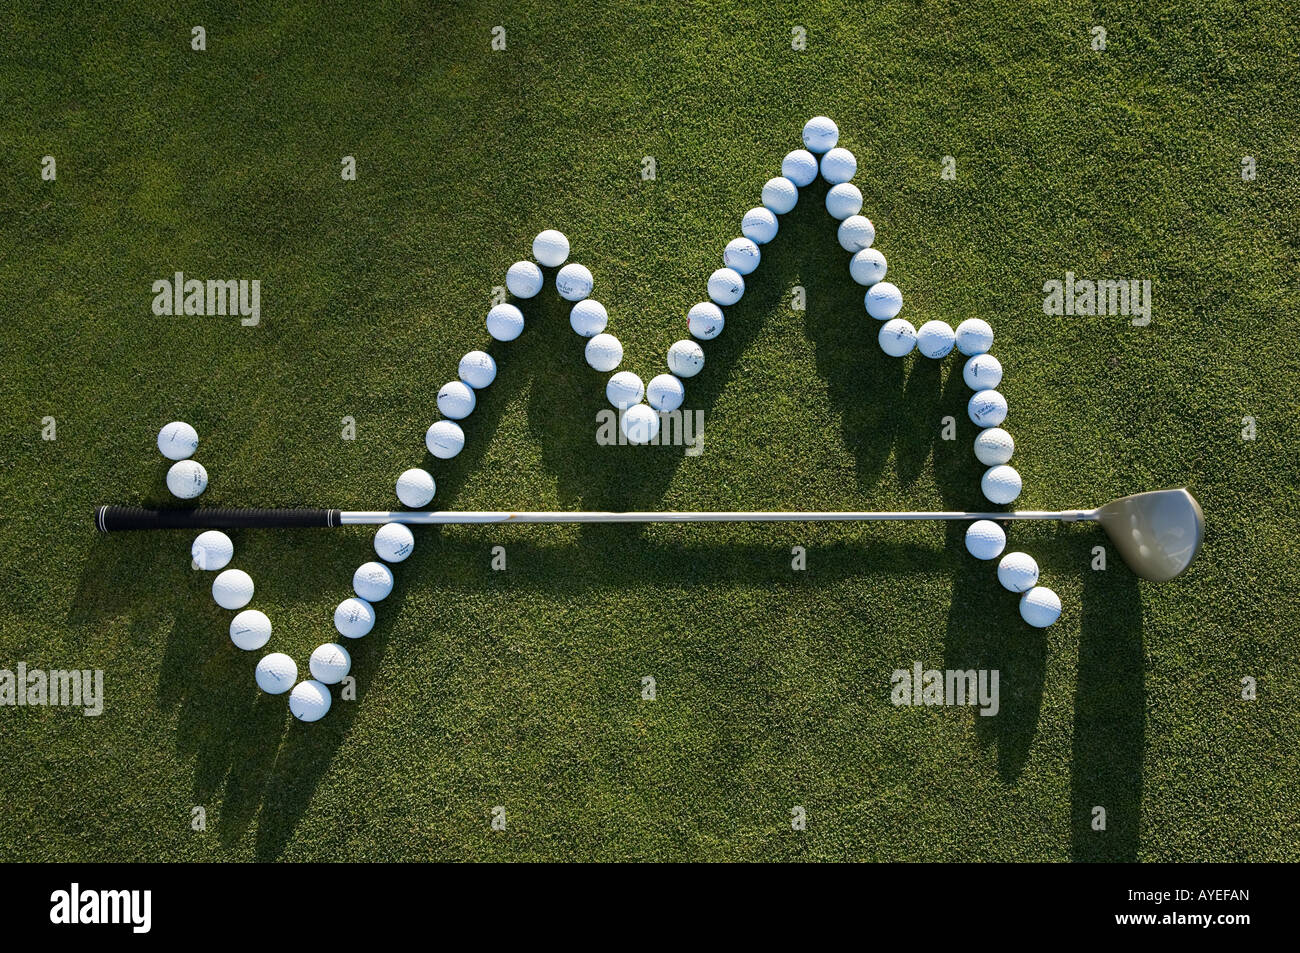 A golf ball and a golf club making a graph - Stock Image